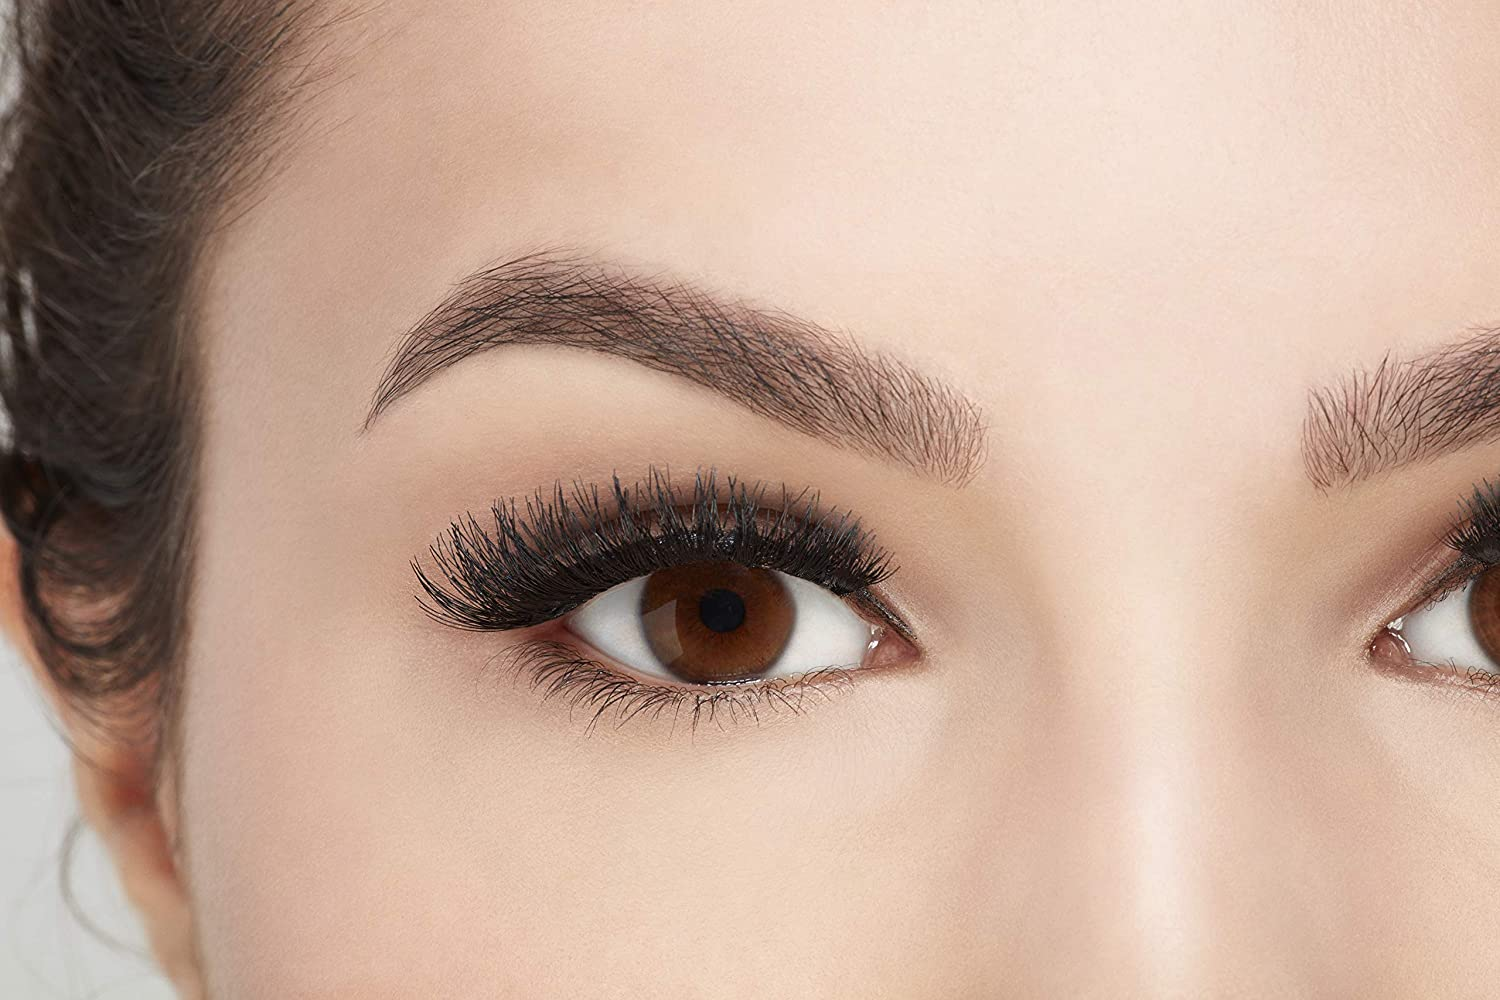 a48a6d3f3ef Amazon.com : Ardell Professional Magnetic Double Strip Lashes, Demi Wispies  : Beauty